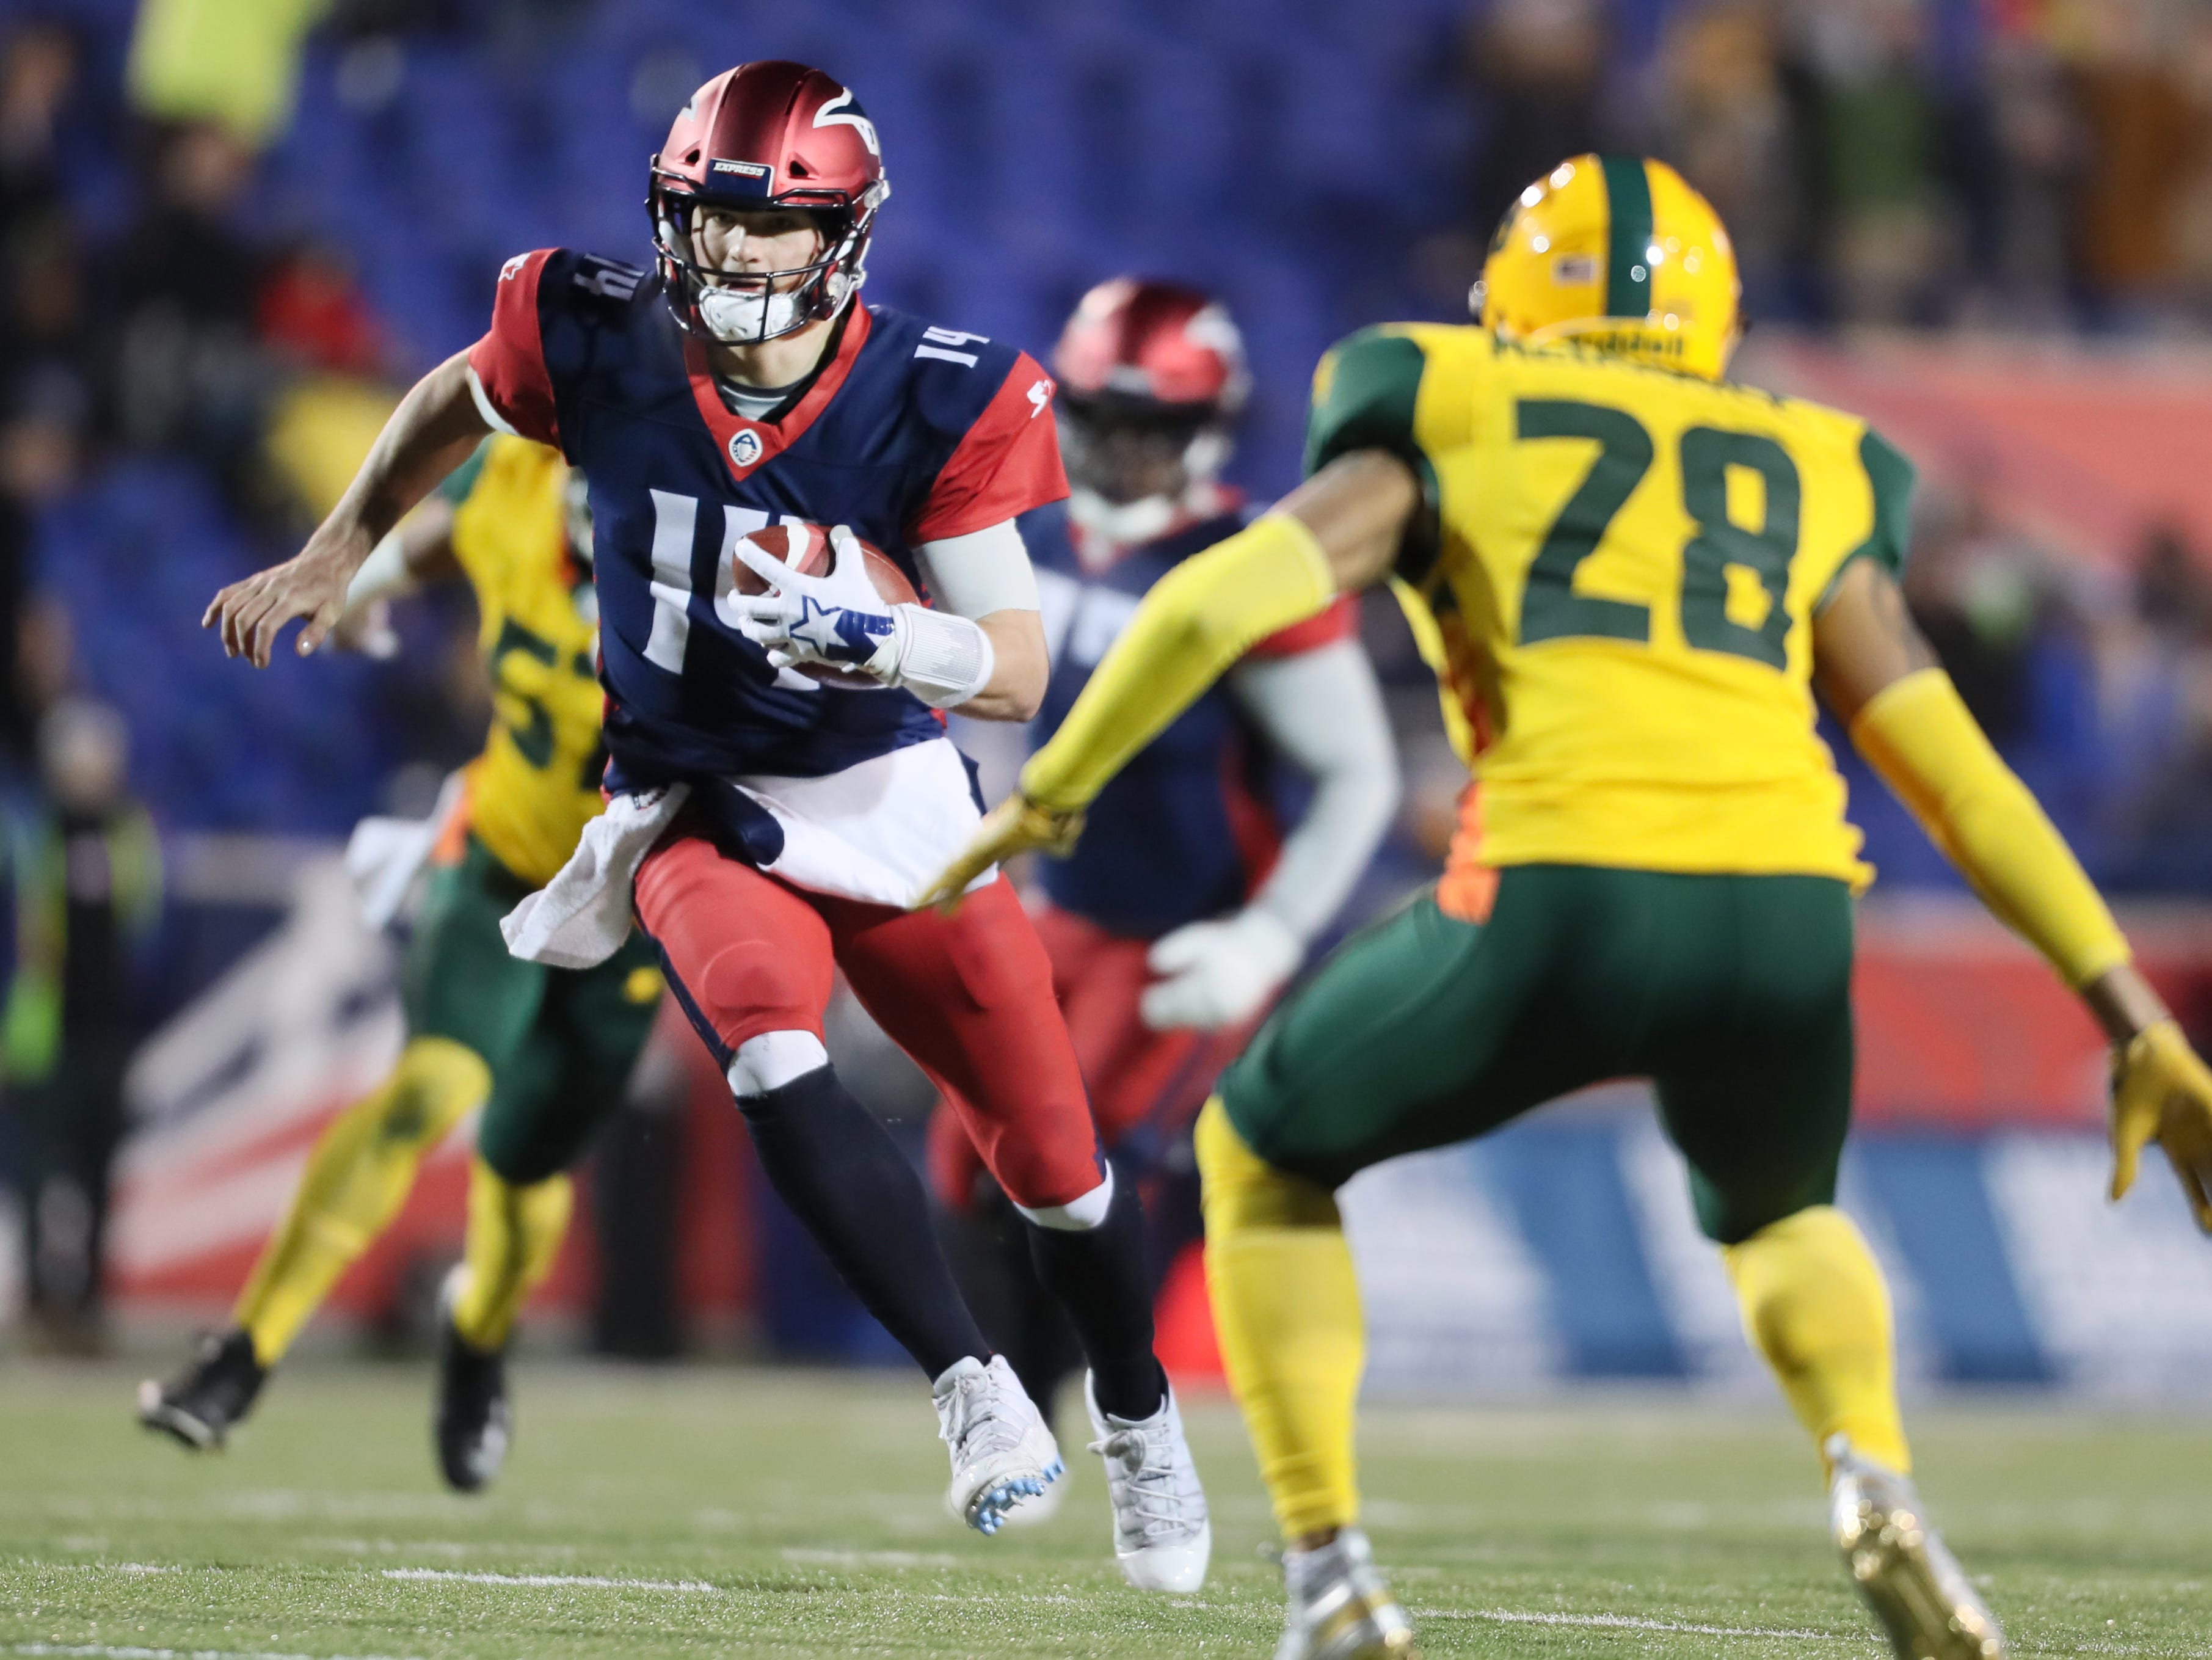 Memphis Express quarterback Christian Hackenberg scrambles out of the pocket against the Arizona Hotshots during their game at the Liberty Bowl on Saturday, Feb. 16, 2019.